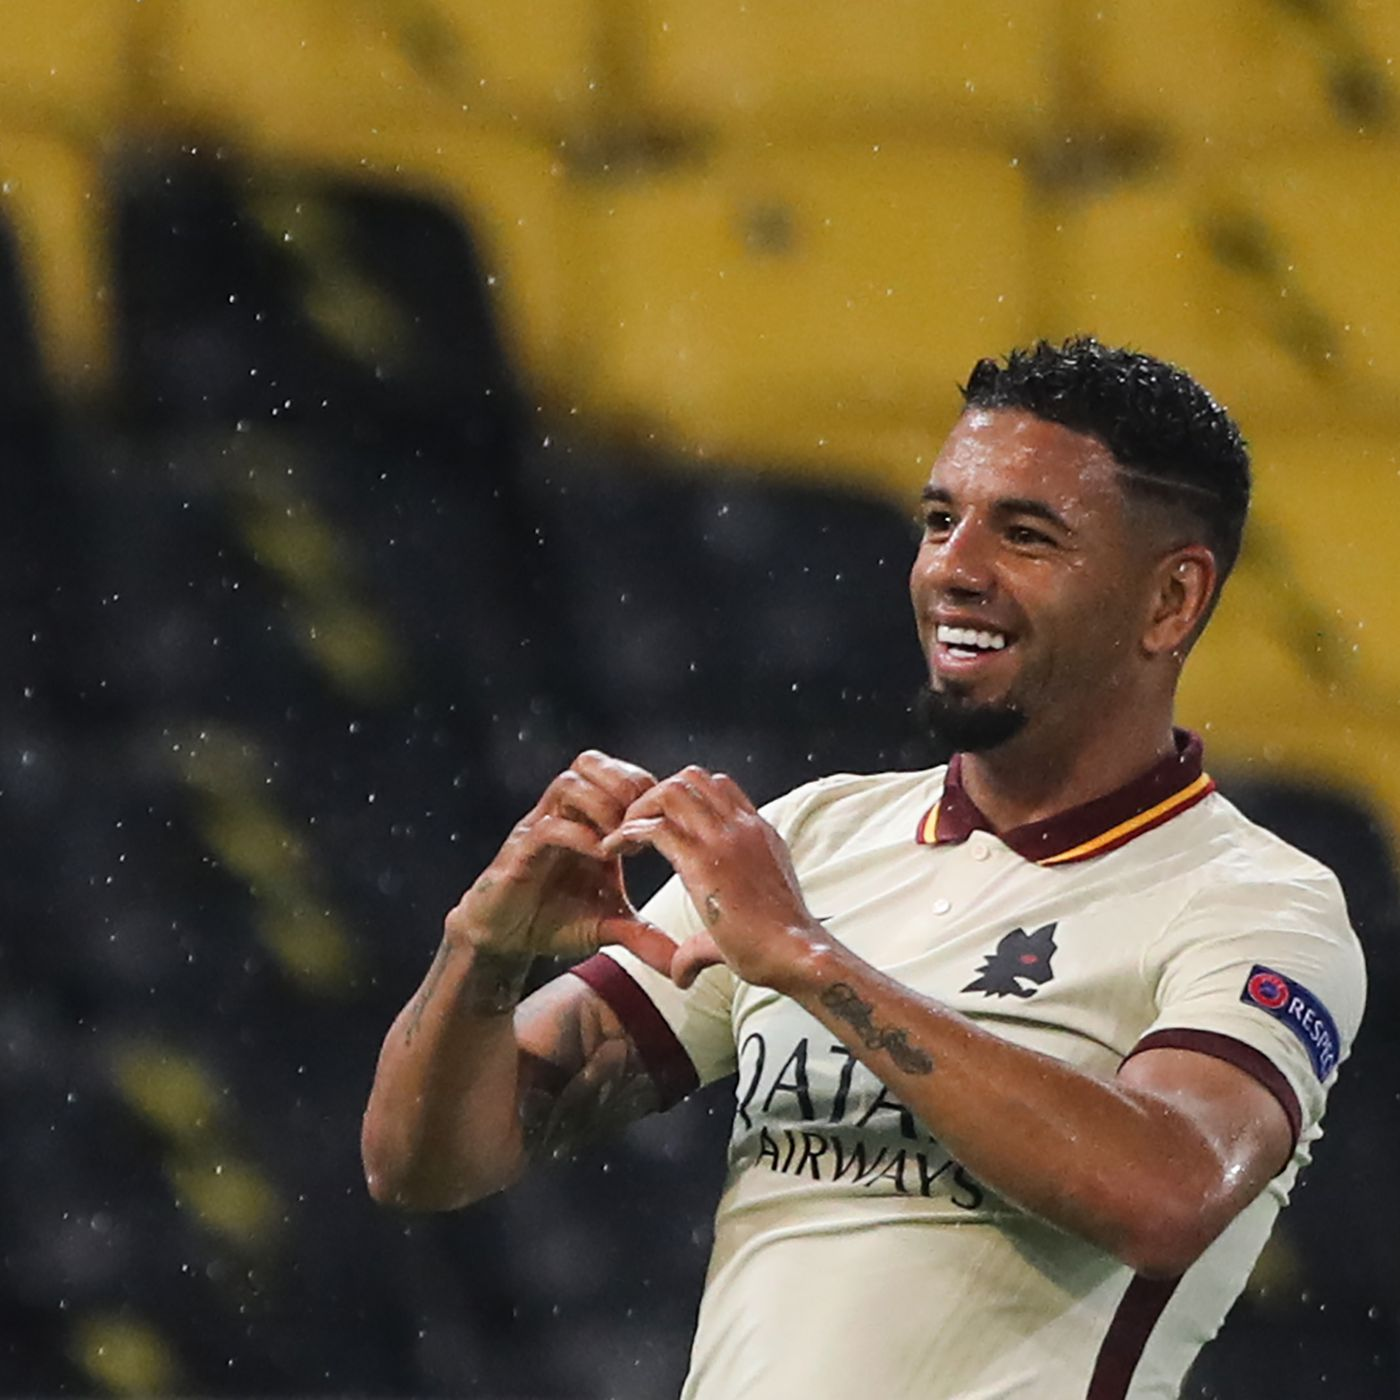 BSC Young Boys 1, AS Roma 2: Player Ratings - Chiesa Di Totti